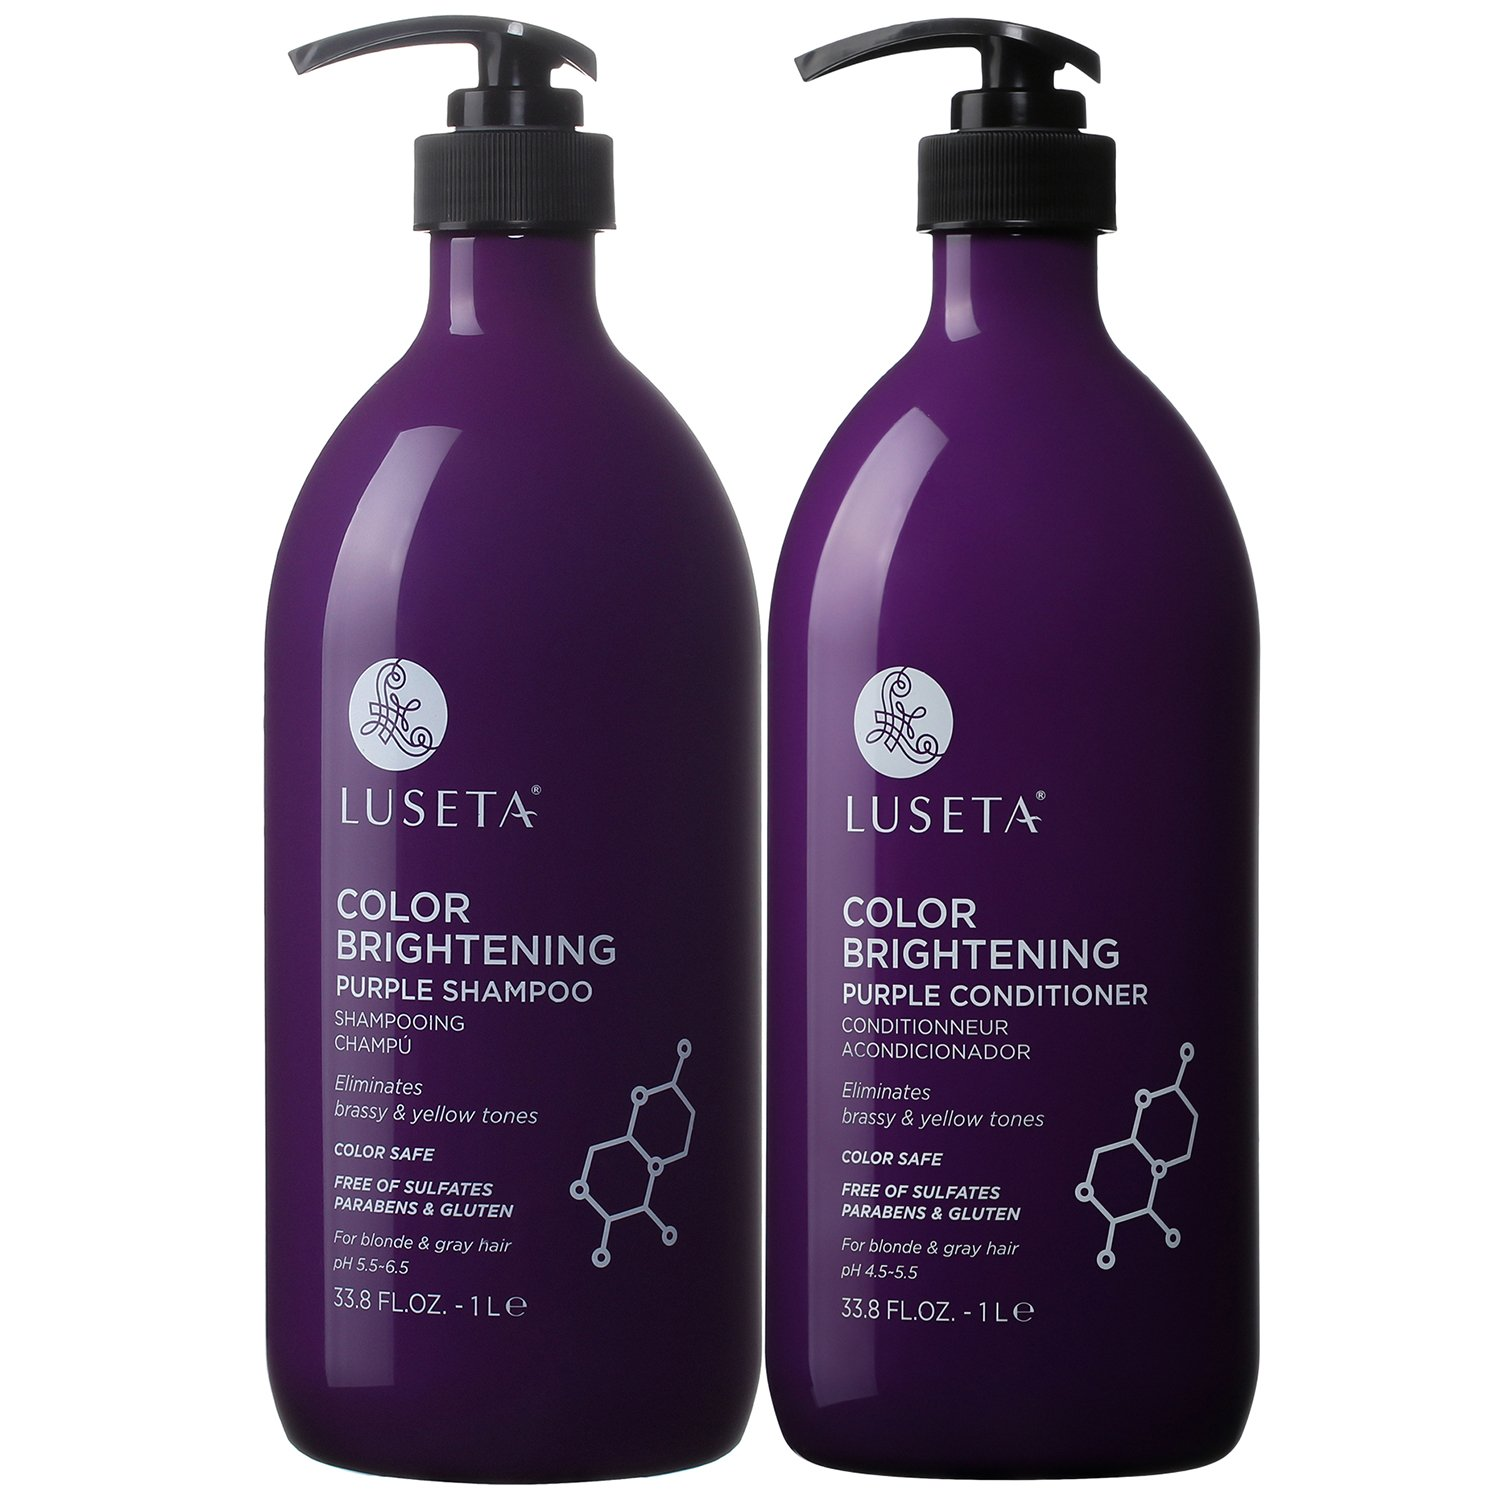 Luseta Color Brightening Purple Shampoo and Conditioner Set for Blonde and Gray Hair, Infused with Cocos Nucifera Oil to Help Nourish, Moisturize and Condition Hair, 2x33.8oz by L LUSETA